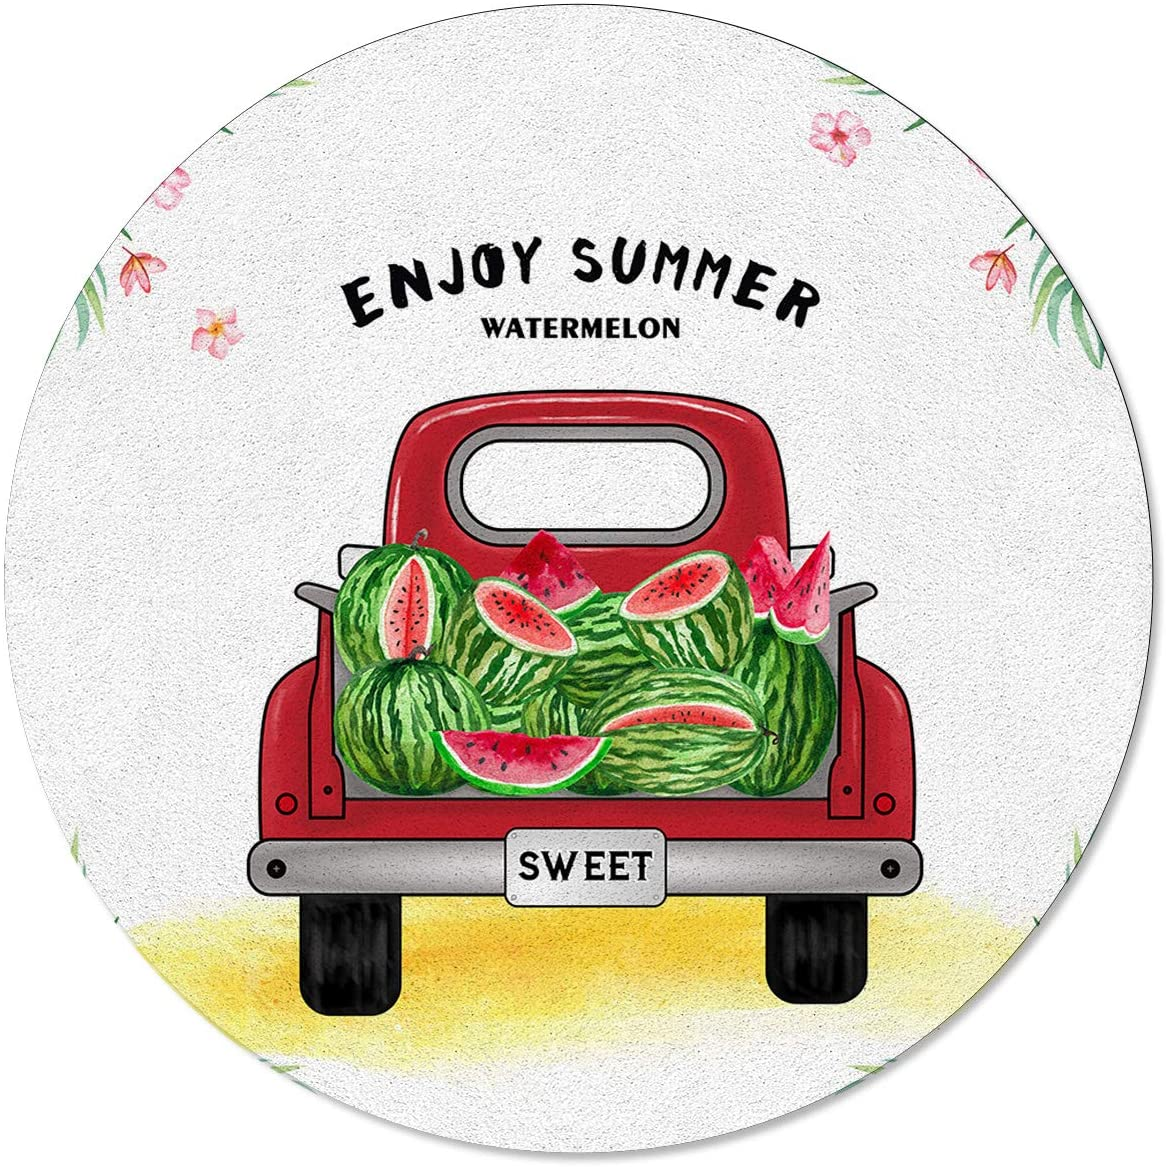 SunShine Day Modern Round Area Mats, Summer Style Red Carries Watermelons Large Rugs for Nursery Kids, Floor Mats for Any Entrance Or Exit 6 Feet